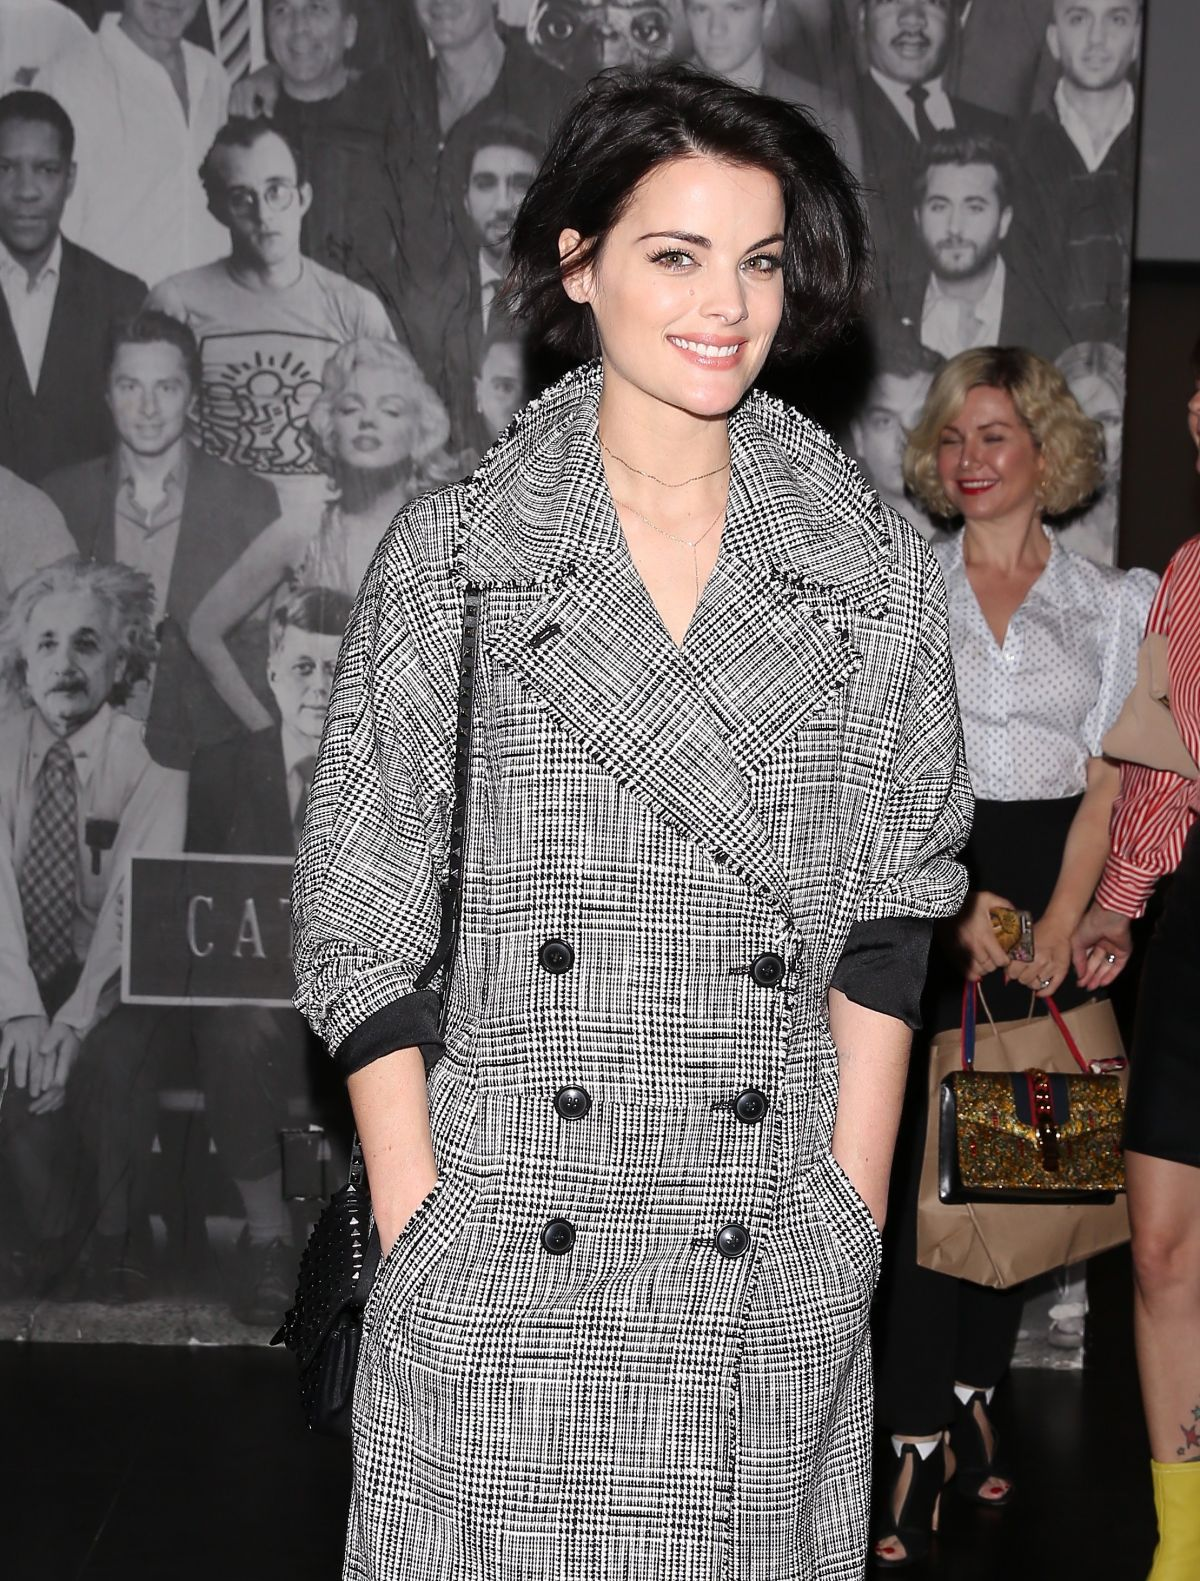 HD Wallpapers of Jaimie Alexander out for Diner at Catch LA in West Hollywood